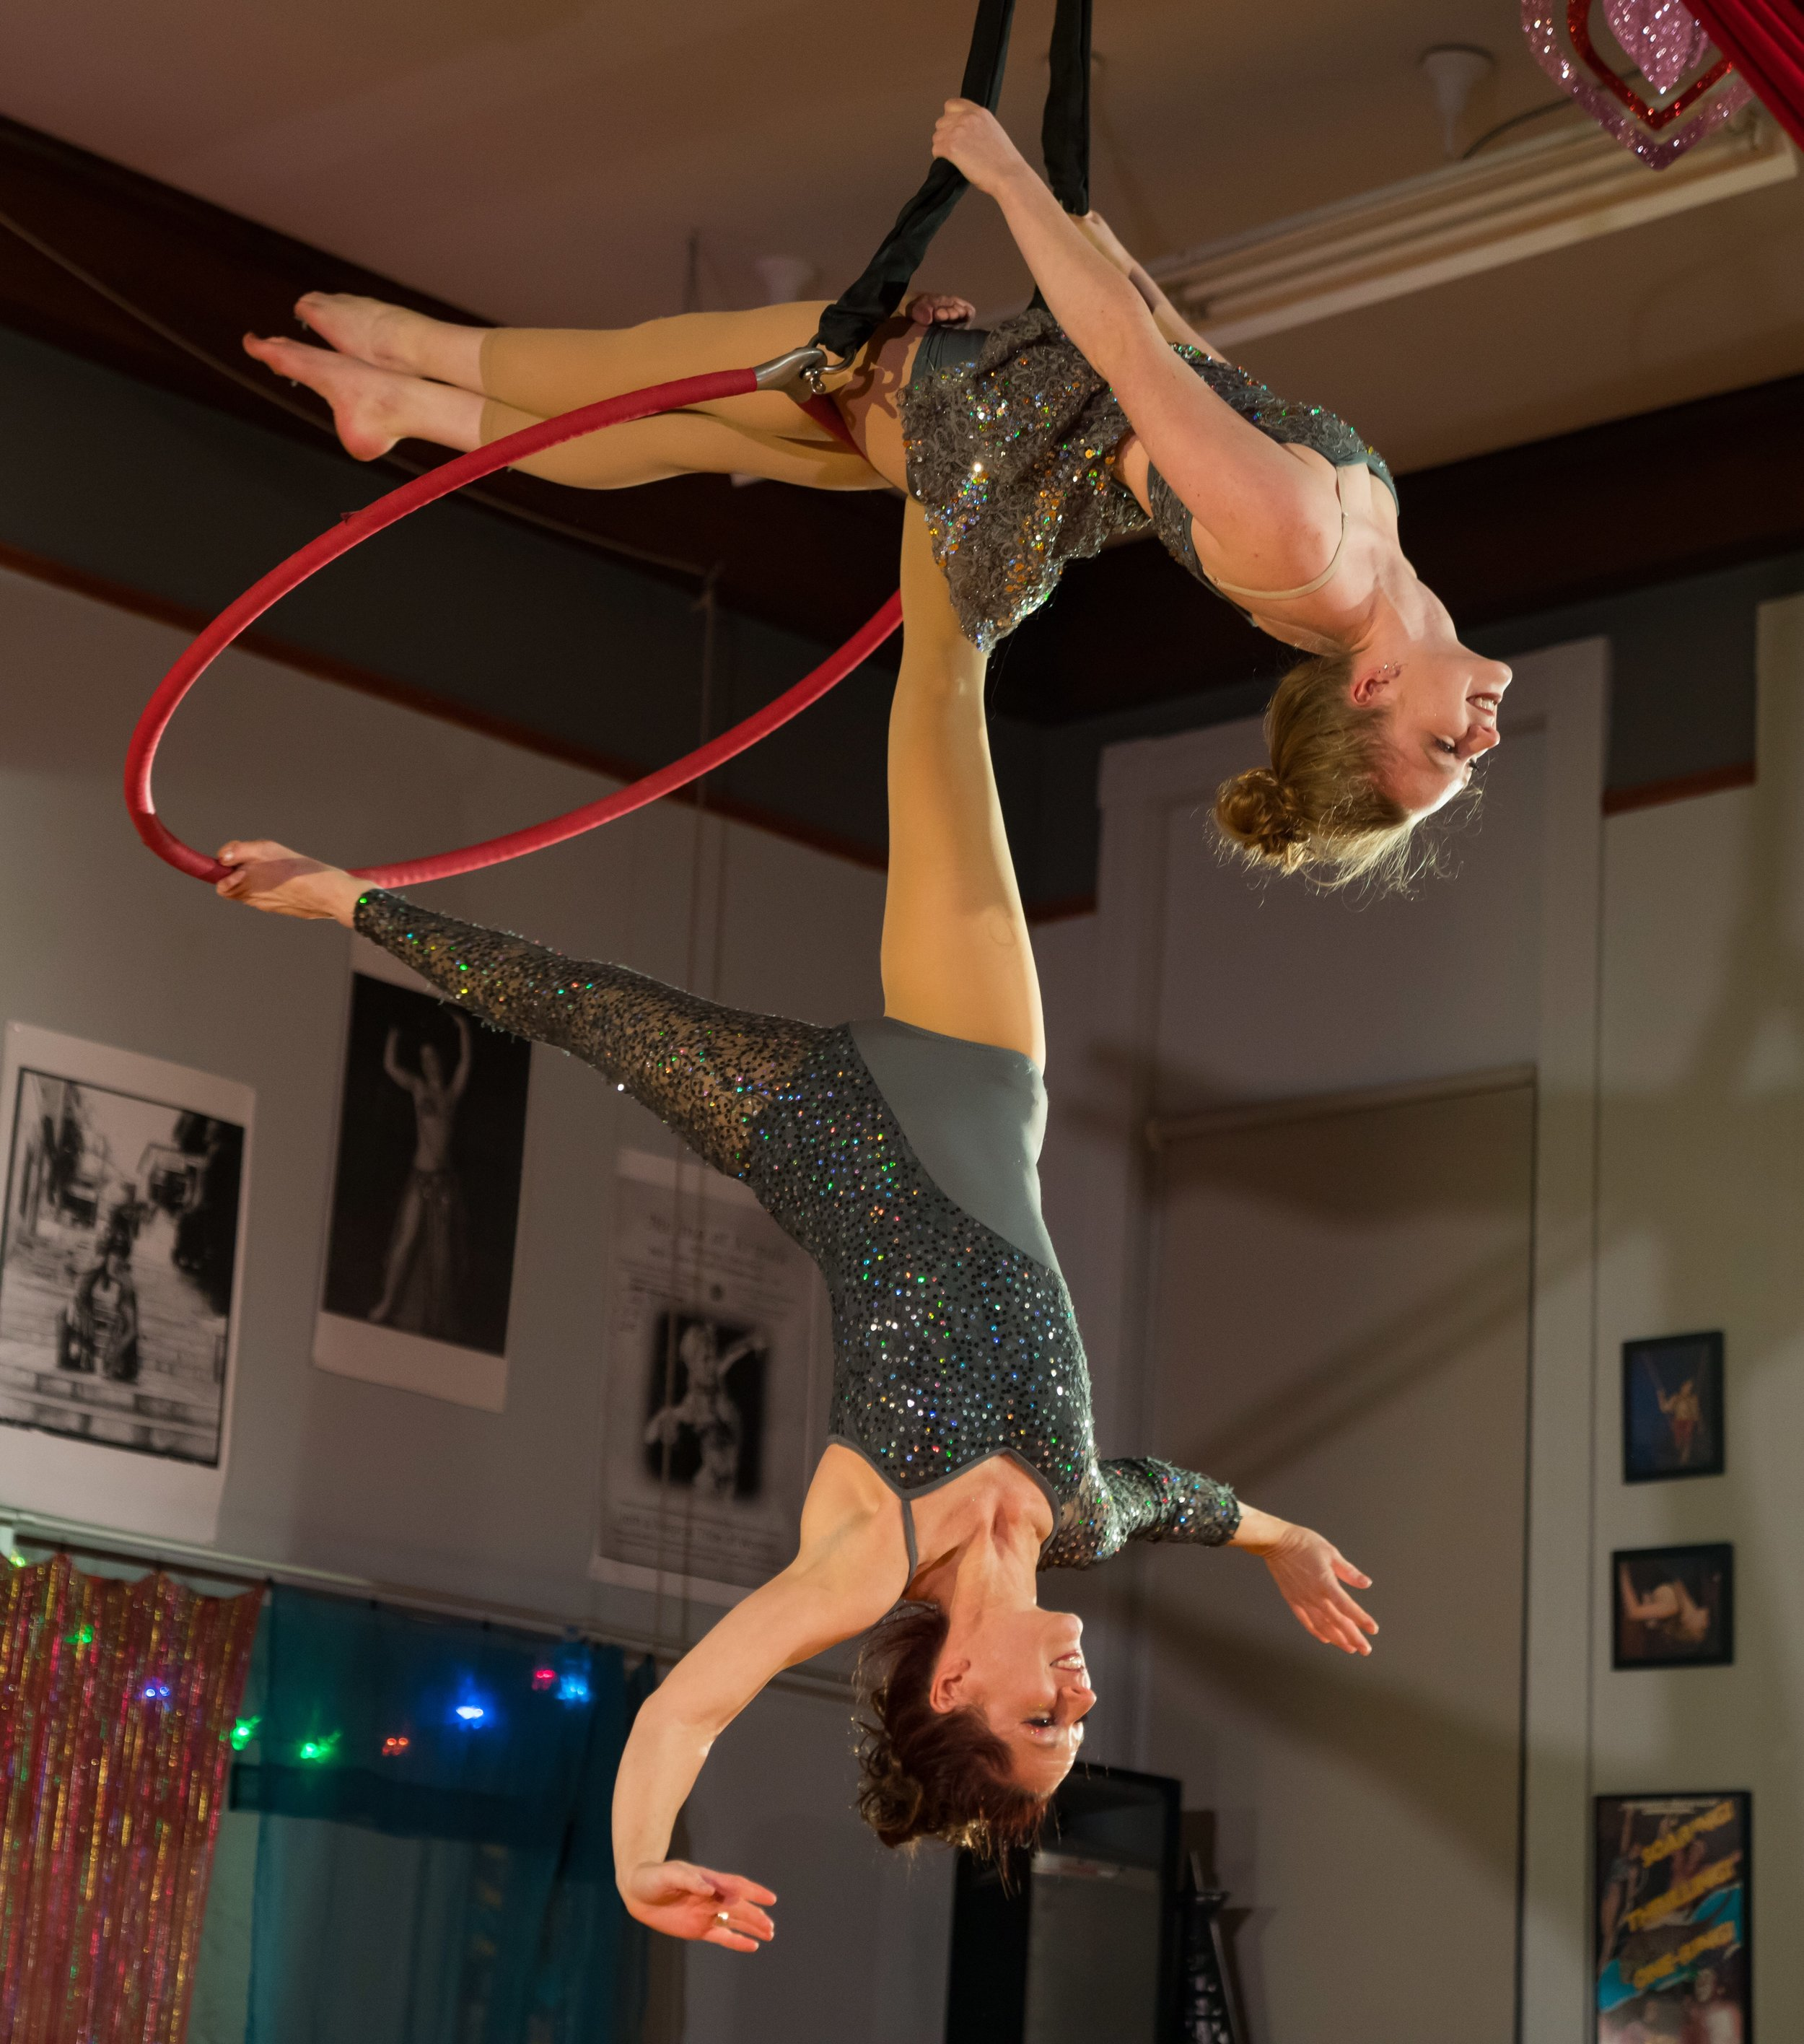 Melinda dangling from her daughter Zoë Heywood. Photo by Bruce Mount.